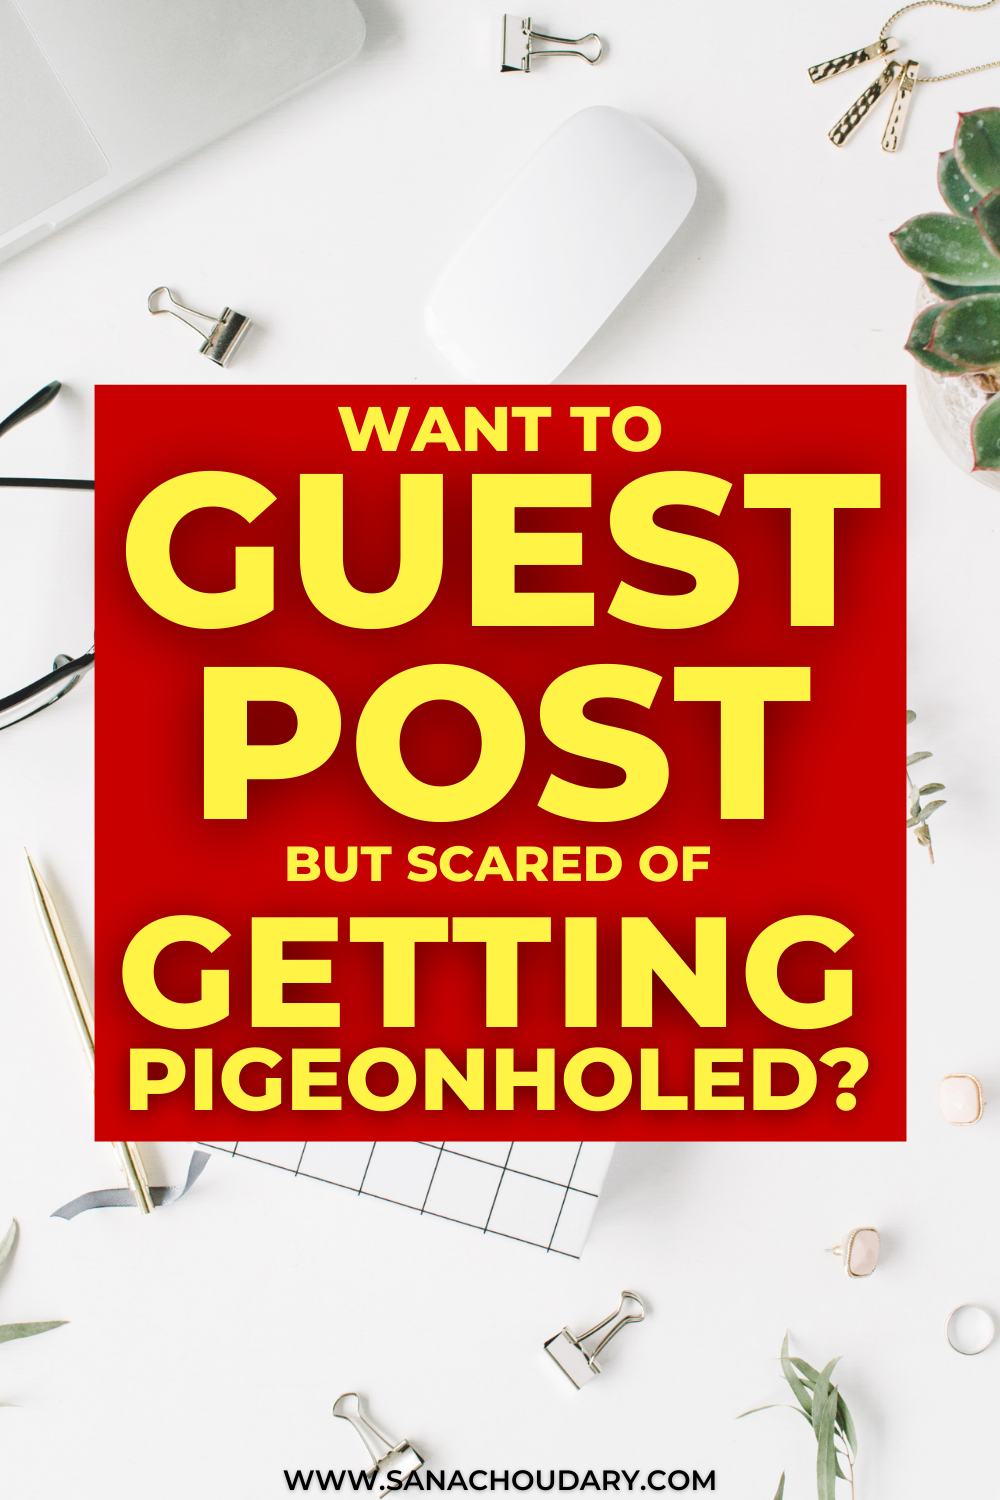 Want to Guest Post but Scared of Getting Pigeonholed?